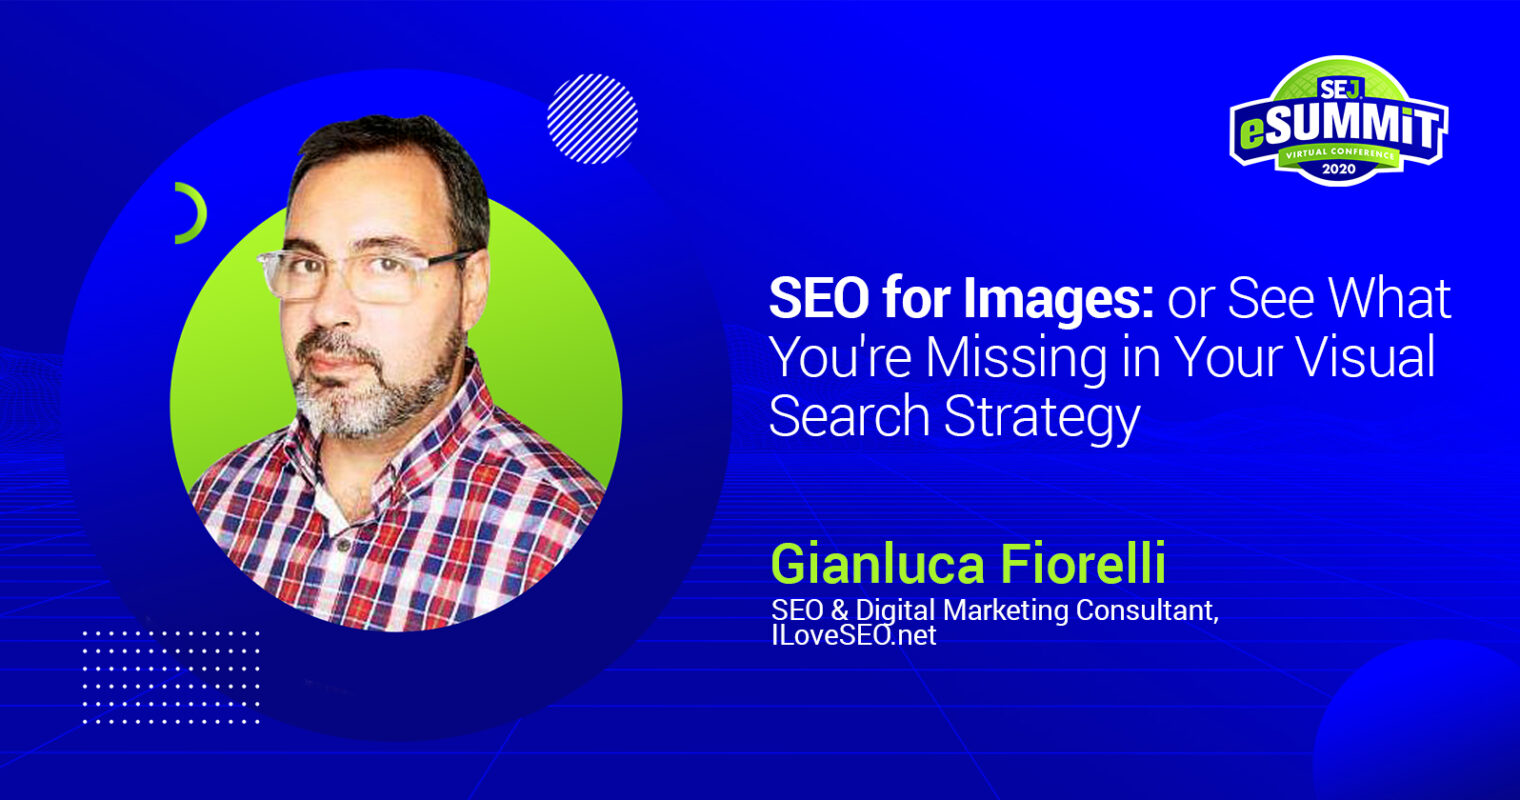 SEO for Images: See What You're Missing in Your Visual Search Strategy